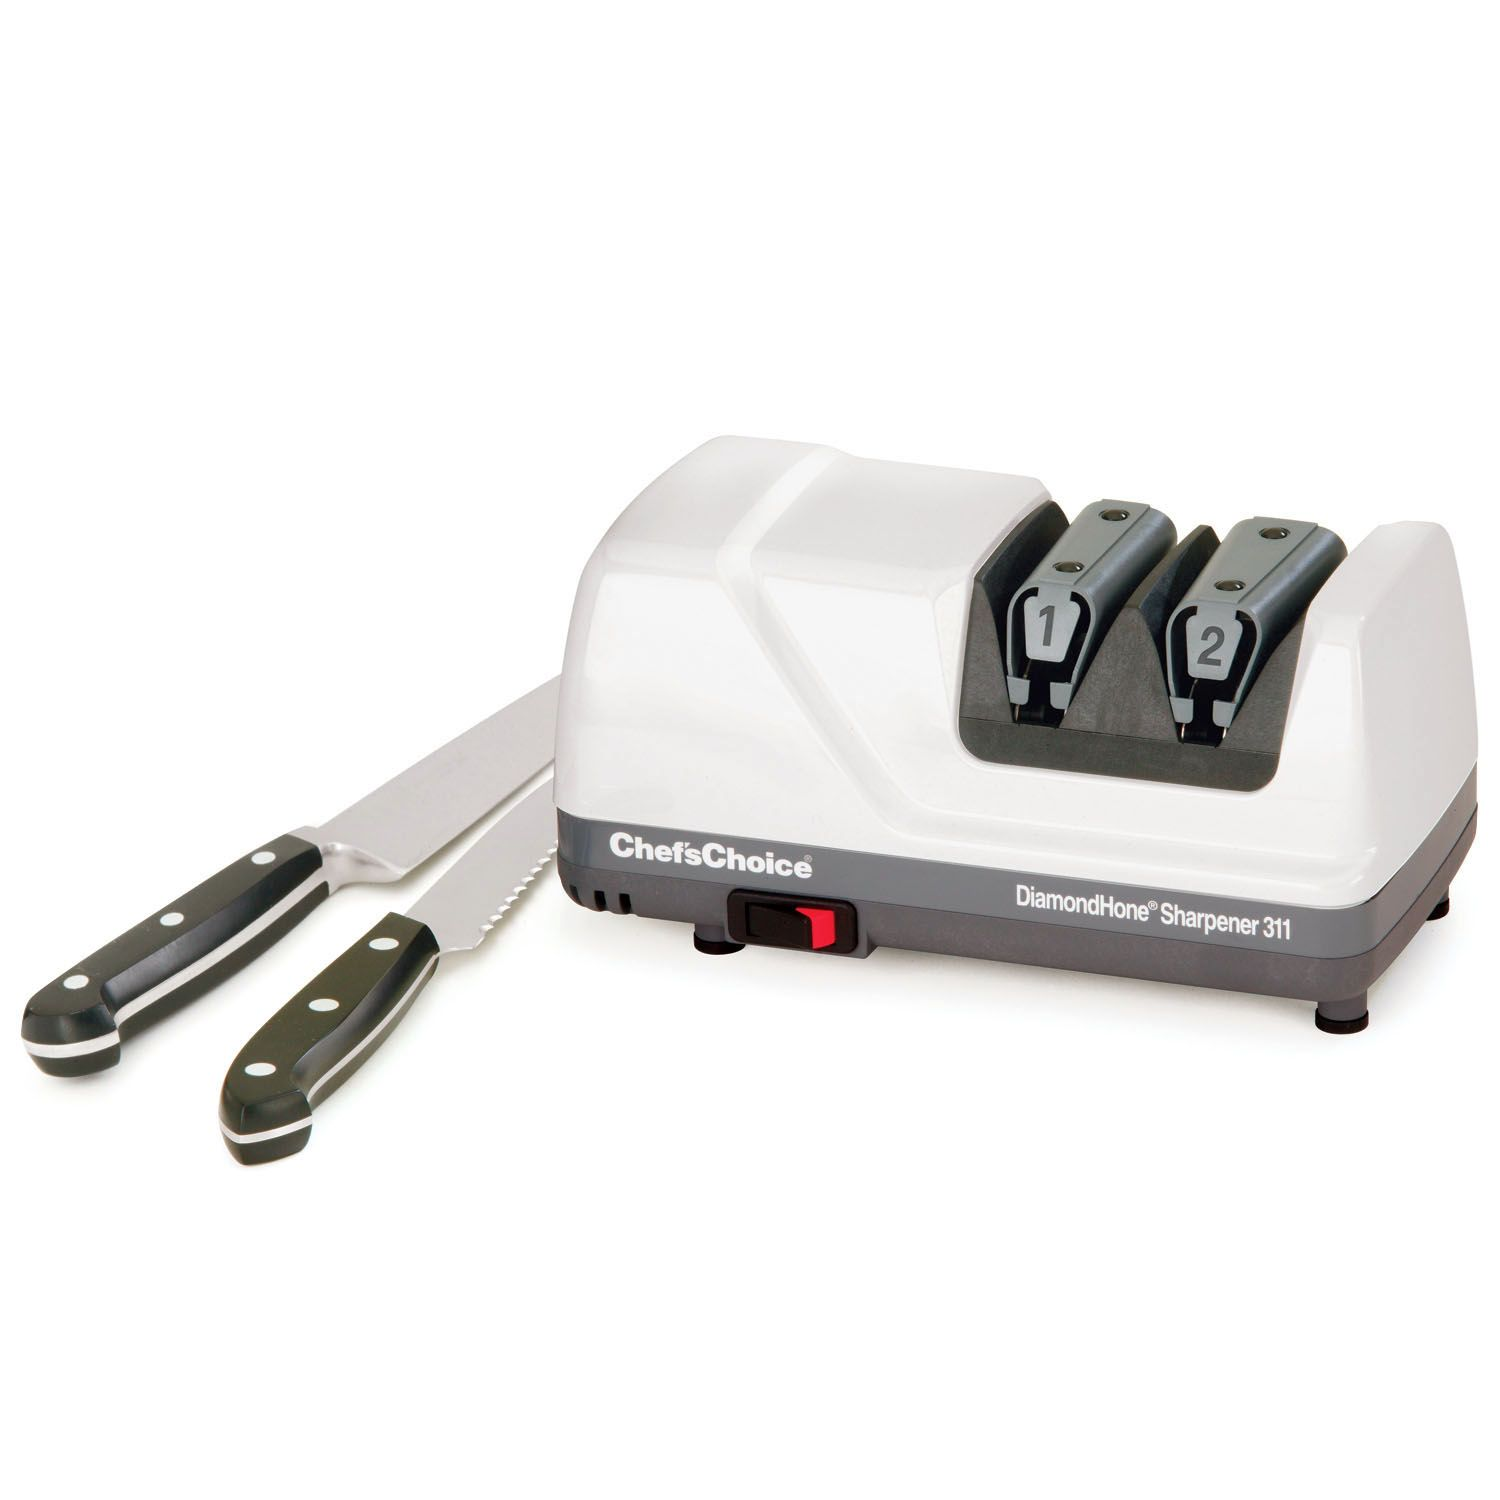 Chef39;sChoice Diamond UltraHone Electric Knife Sharpener